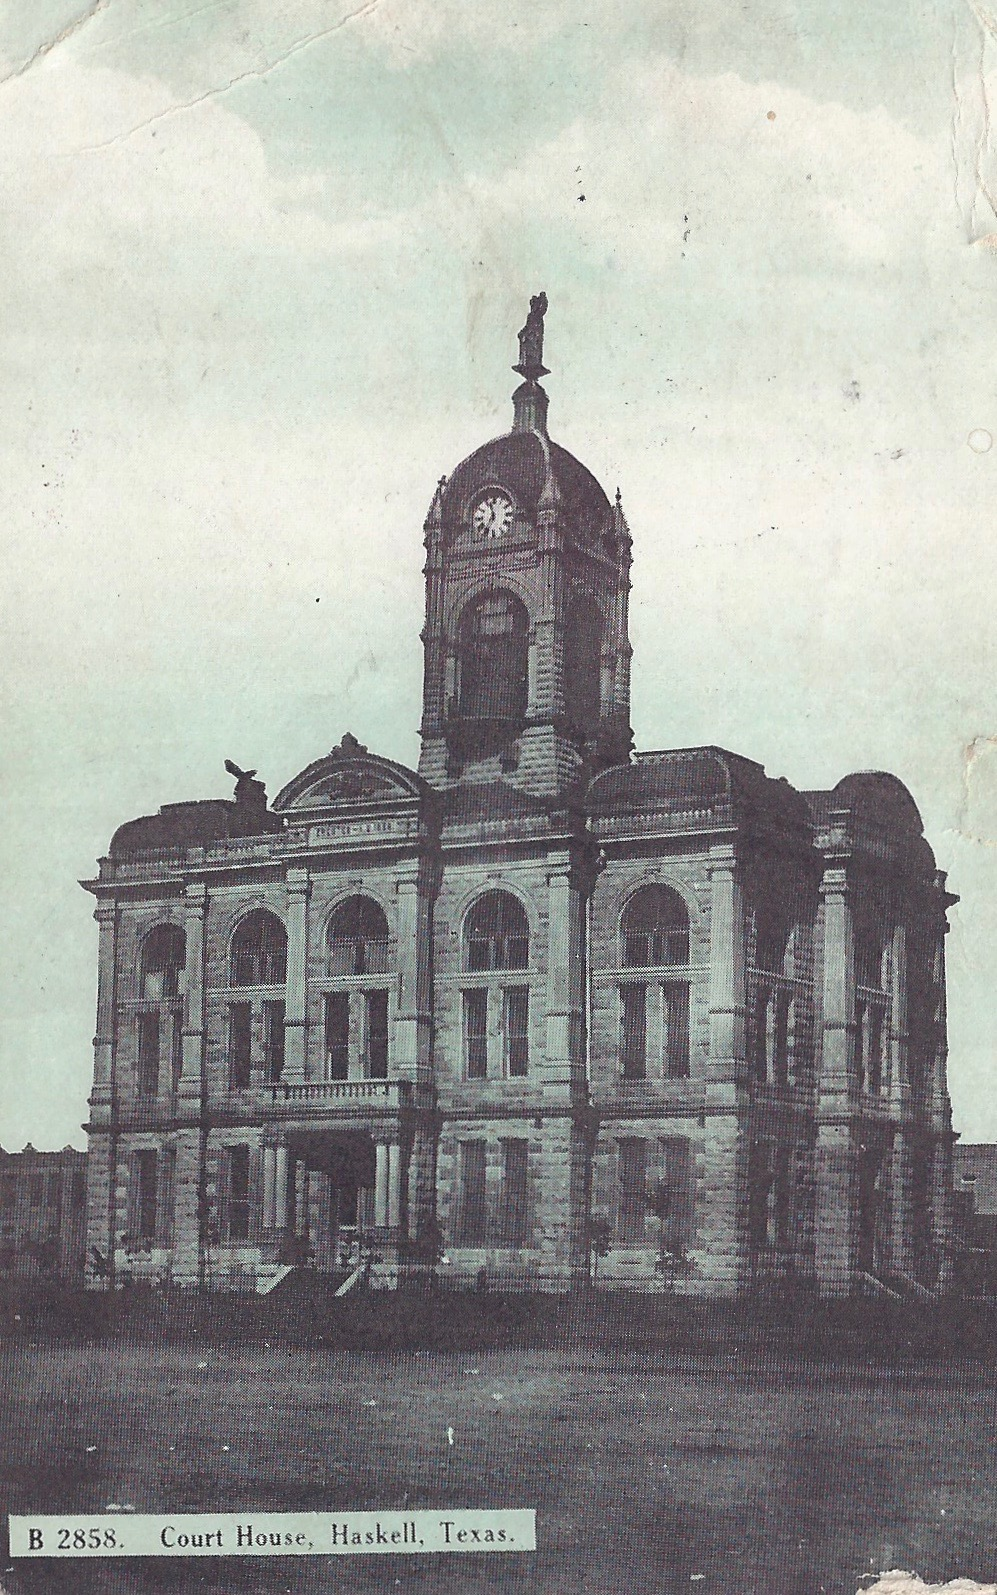 Historic Haskell County Courthouse, Haskell, Texas Postcard